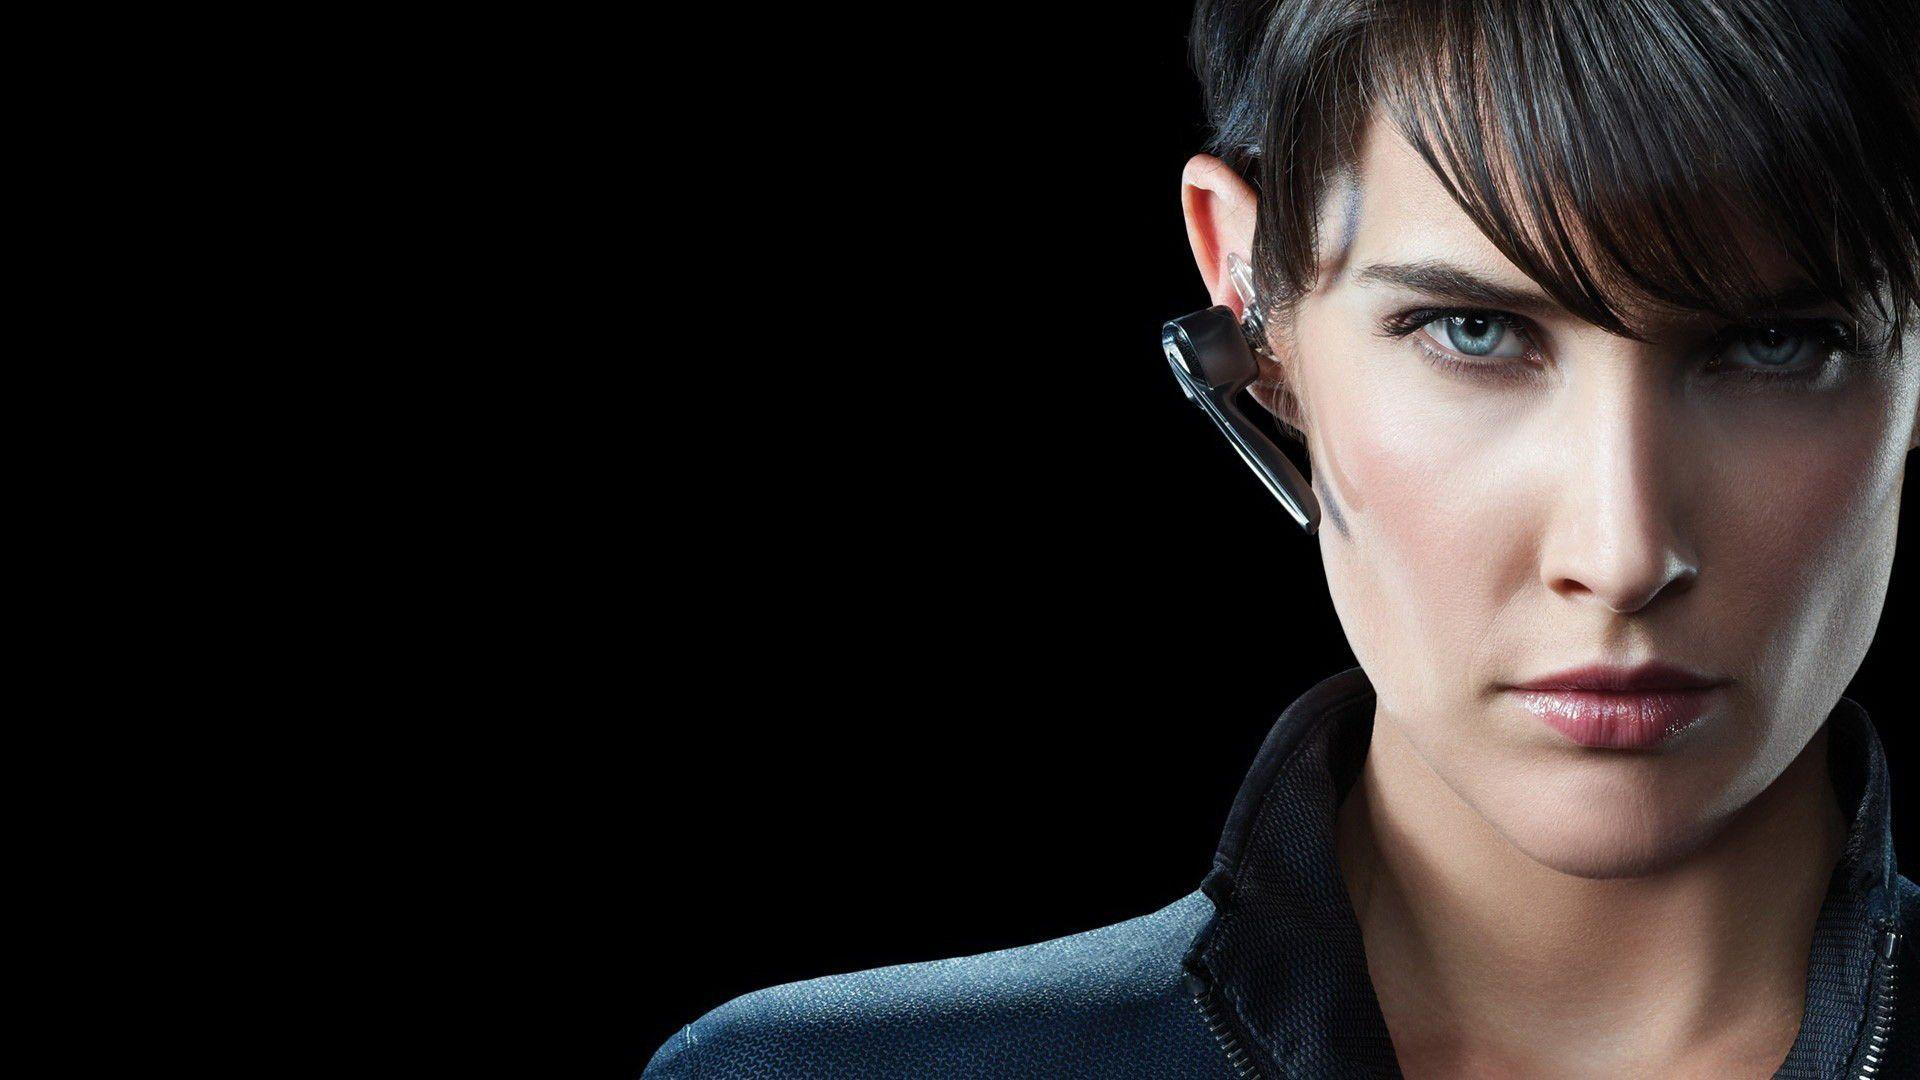 cobie smulders wallpapers - photo #4